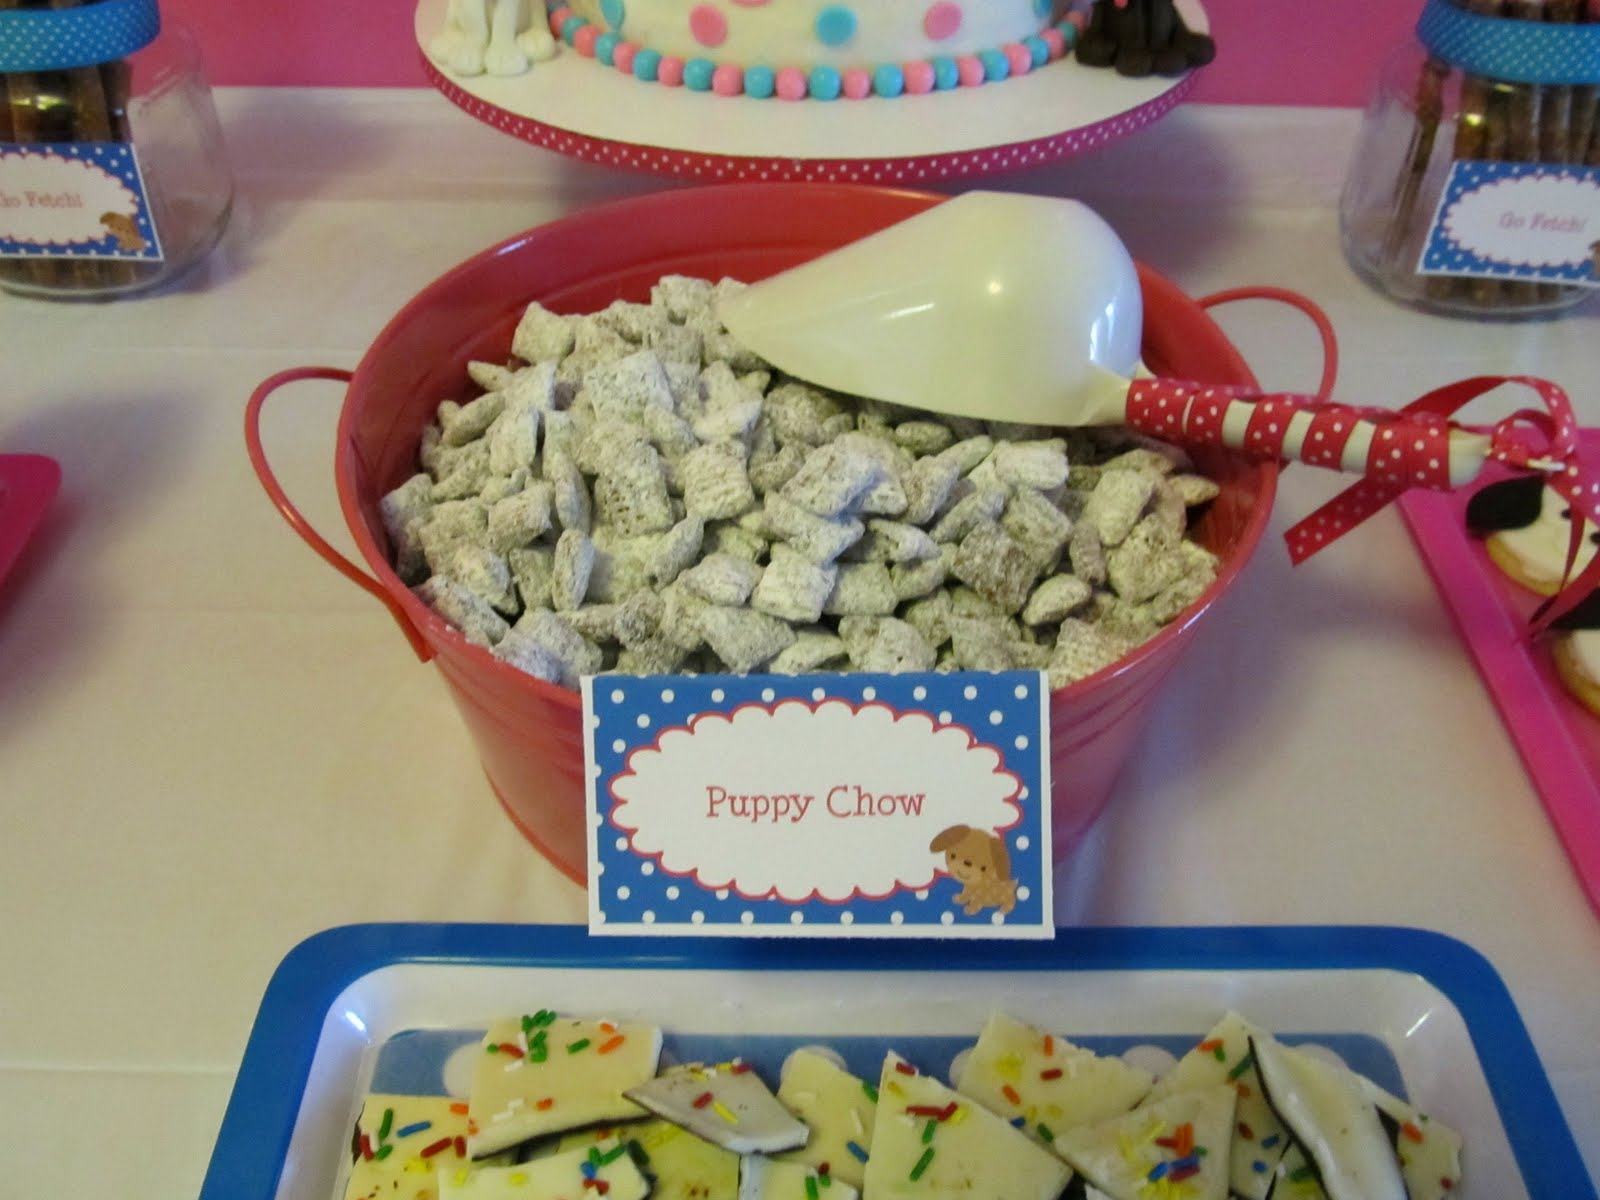 When I Saw This Recipe For Birthday Bark Knew It Had To Make An Appearance At Our Party Another Super Easy